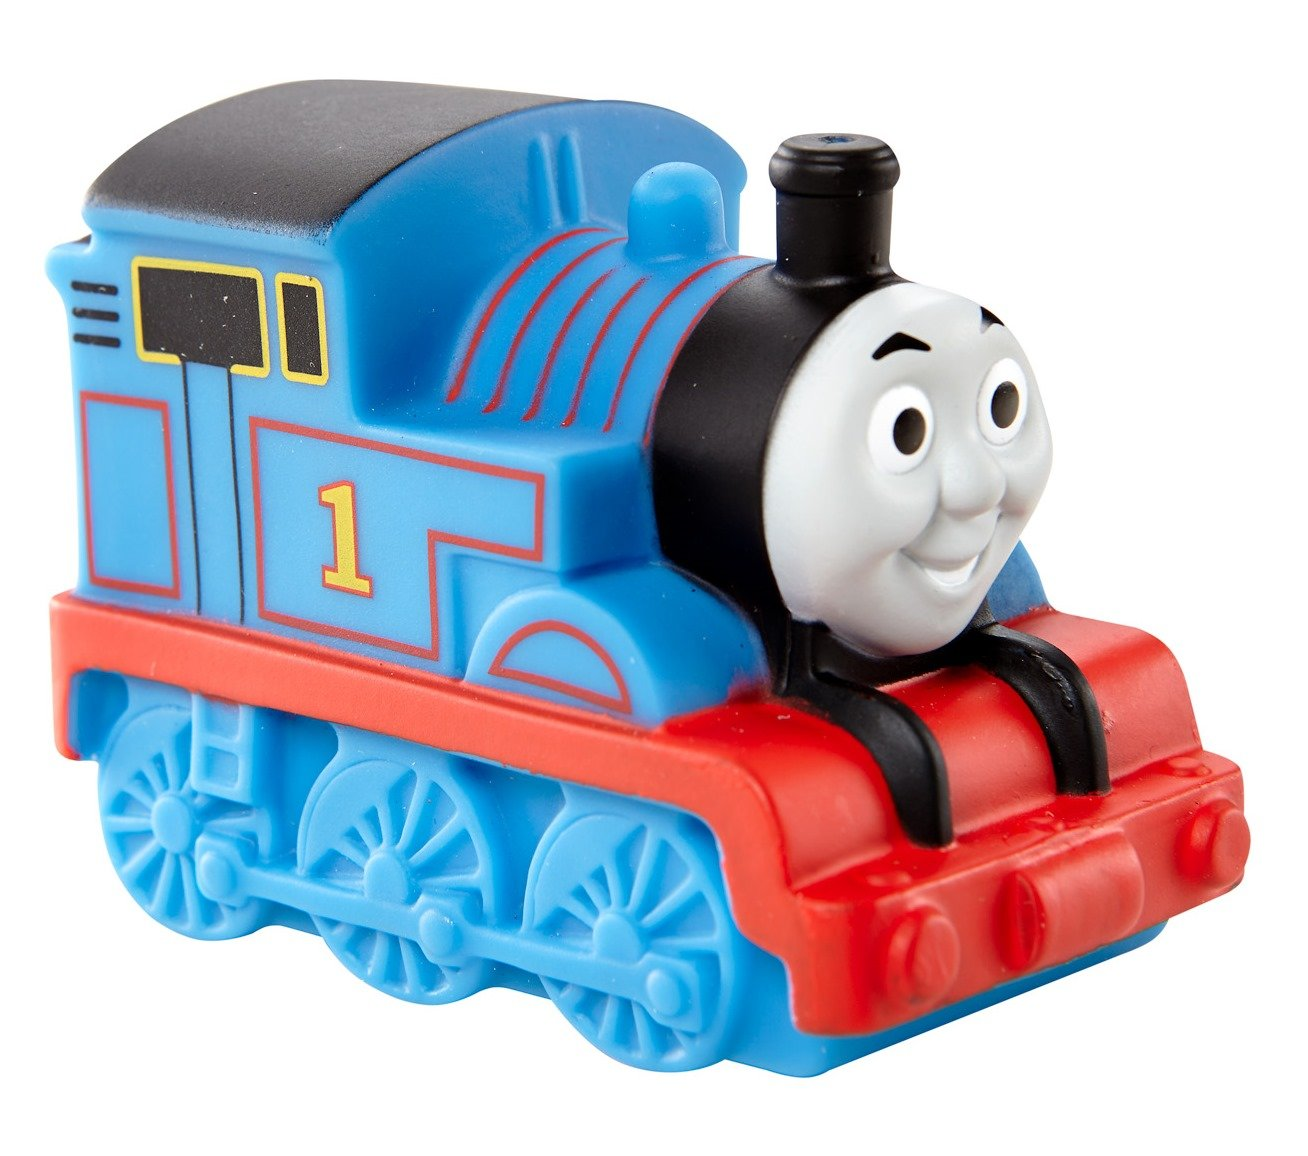 Amazon.com: Thomas & Friends Fisher-Price My First Thomas Bath ...